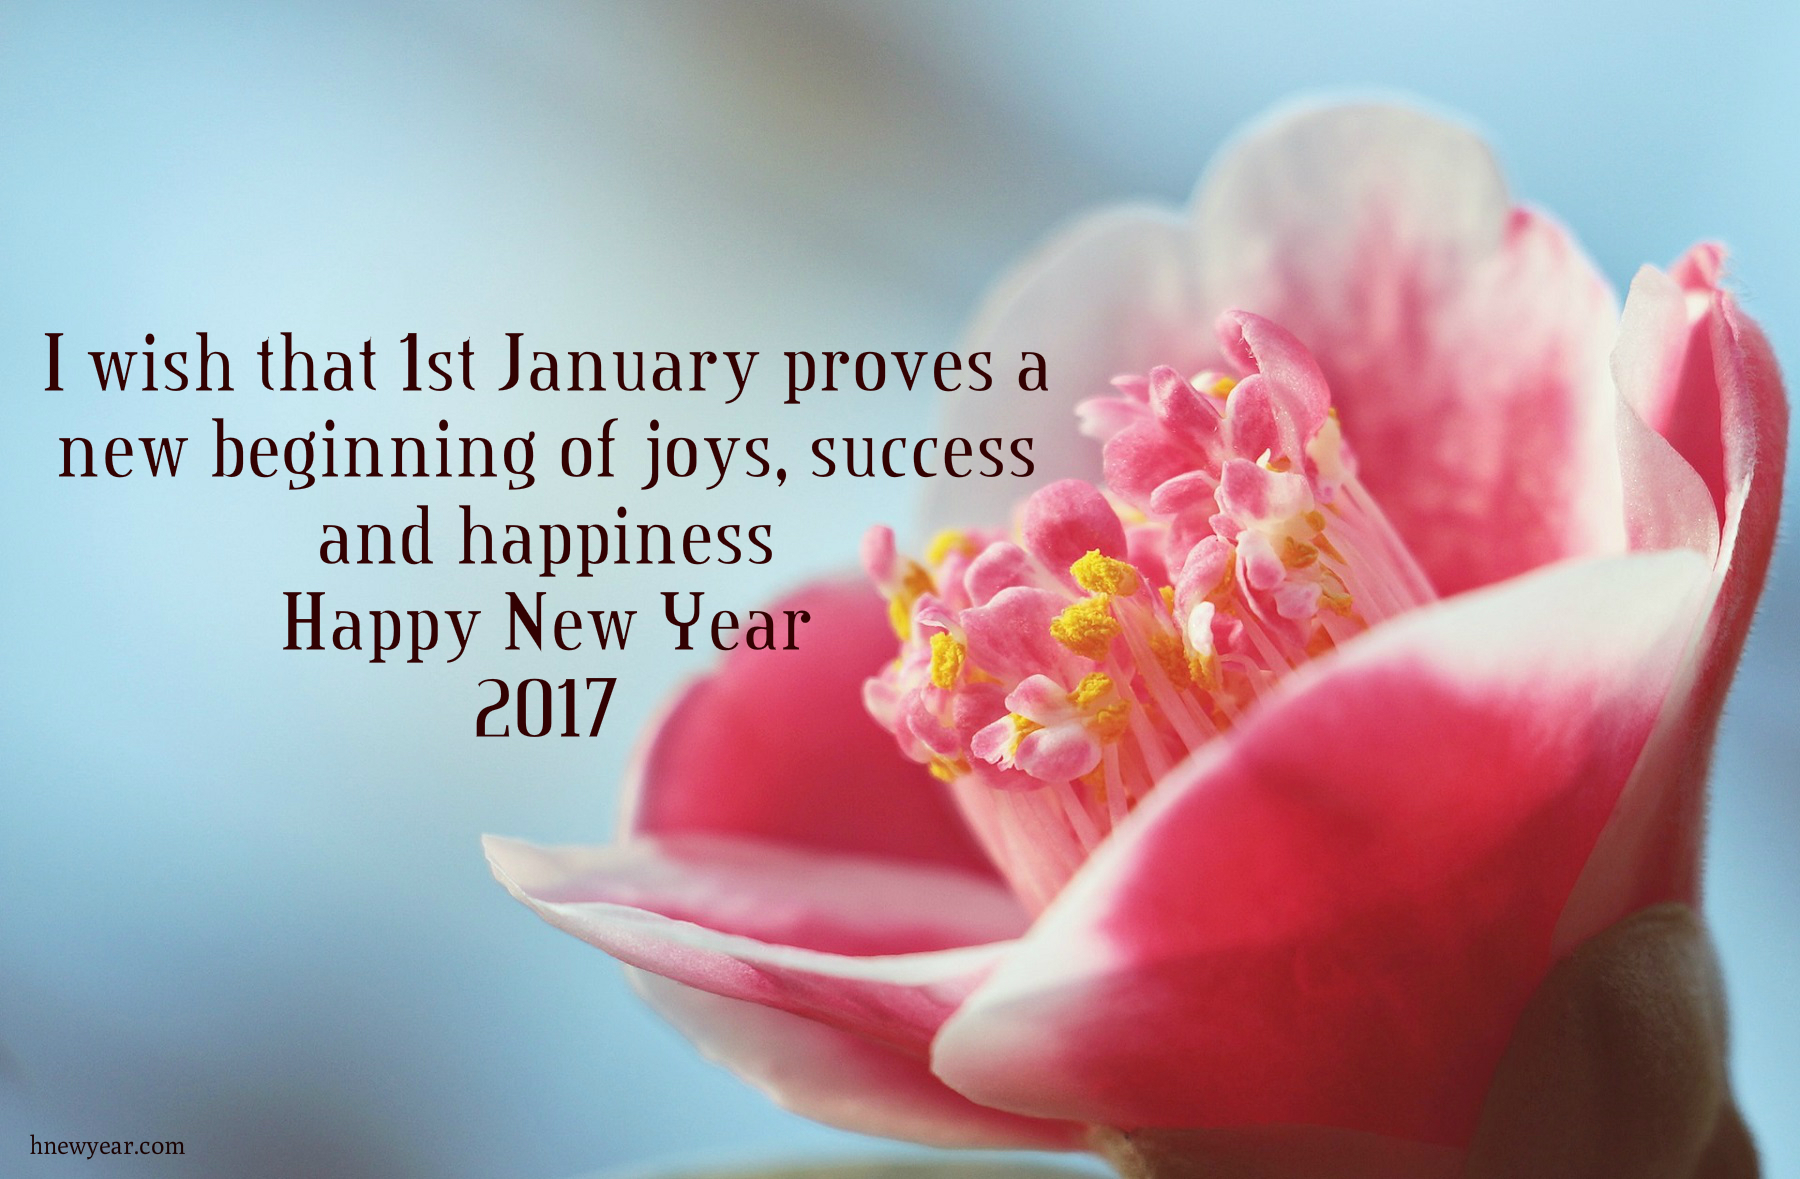 New Year Wishes 2017 For Someone Special 6